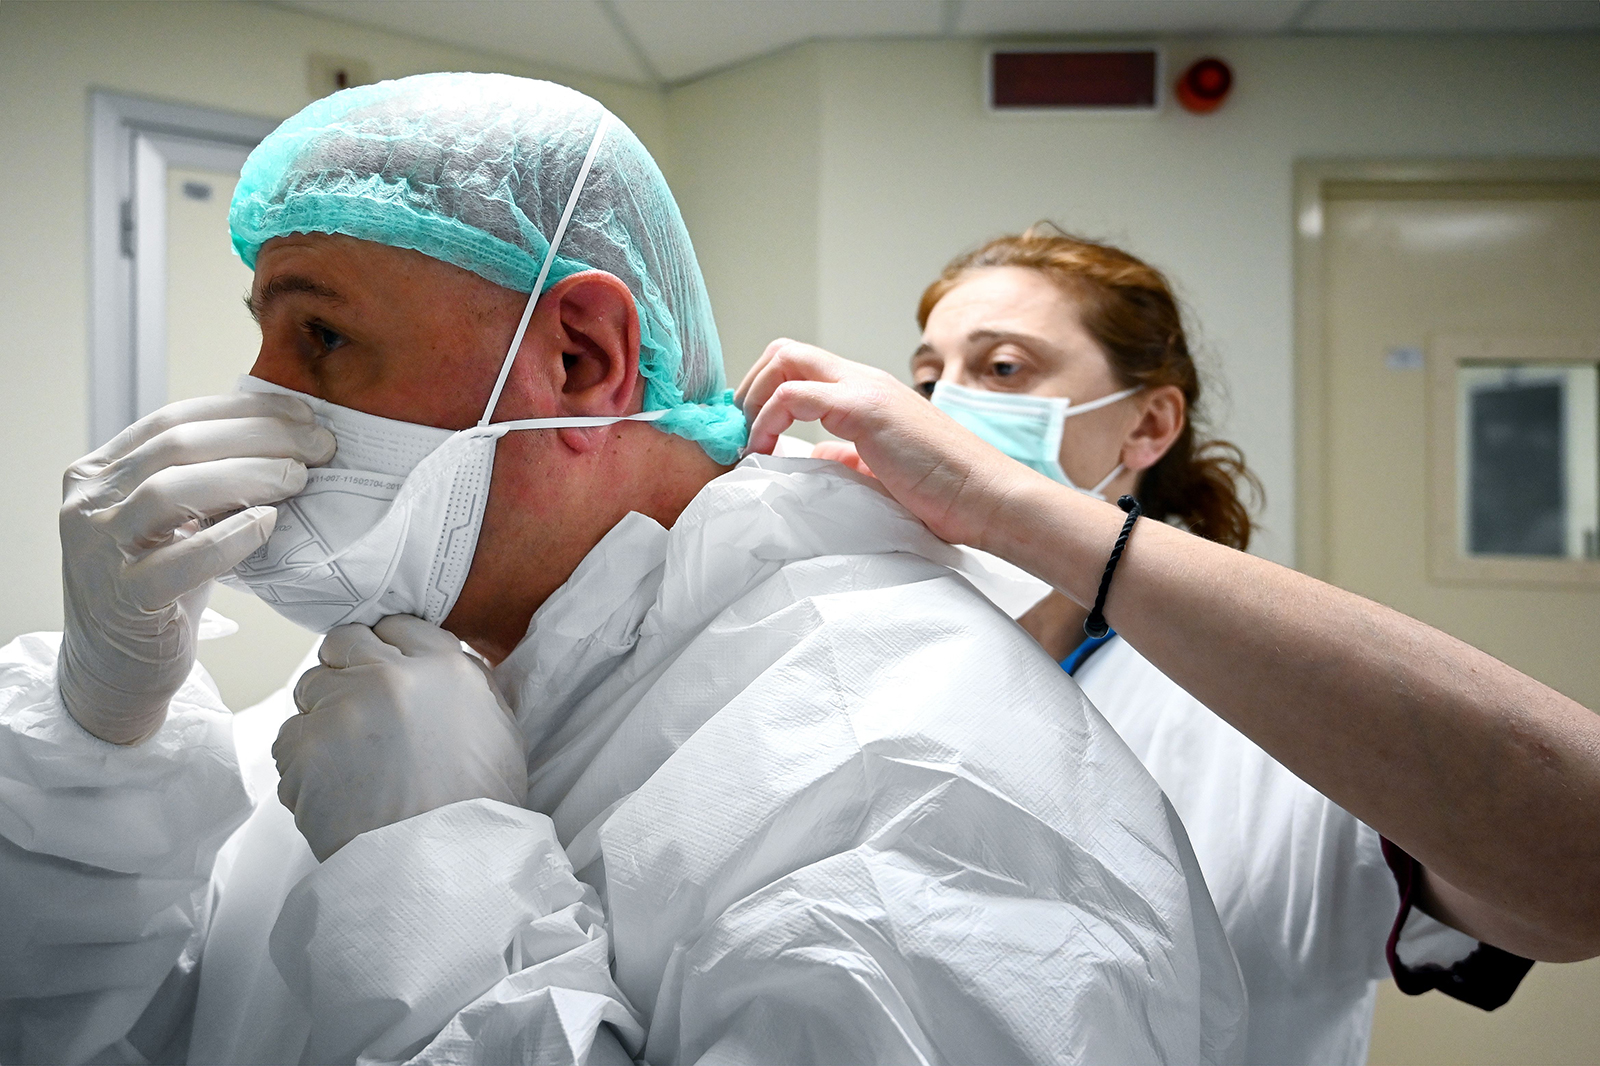 A nurse helps Italian anaesthesiologist Marino De Rosa to put on his mask at the ICU division of the Covid-19 unit at the San Filippo Neri hospital, in Rome, on April 29.